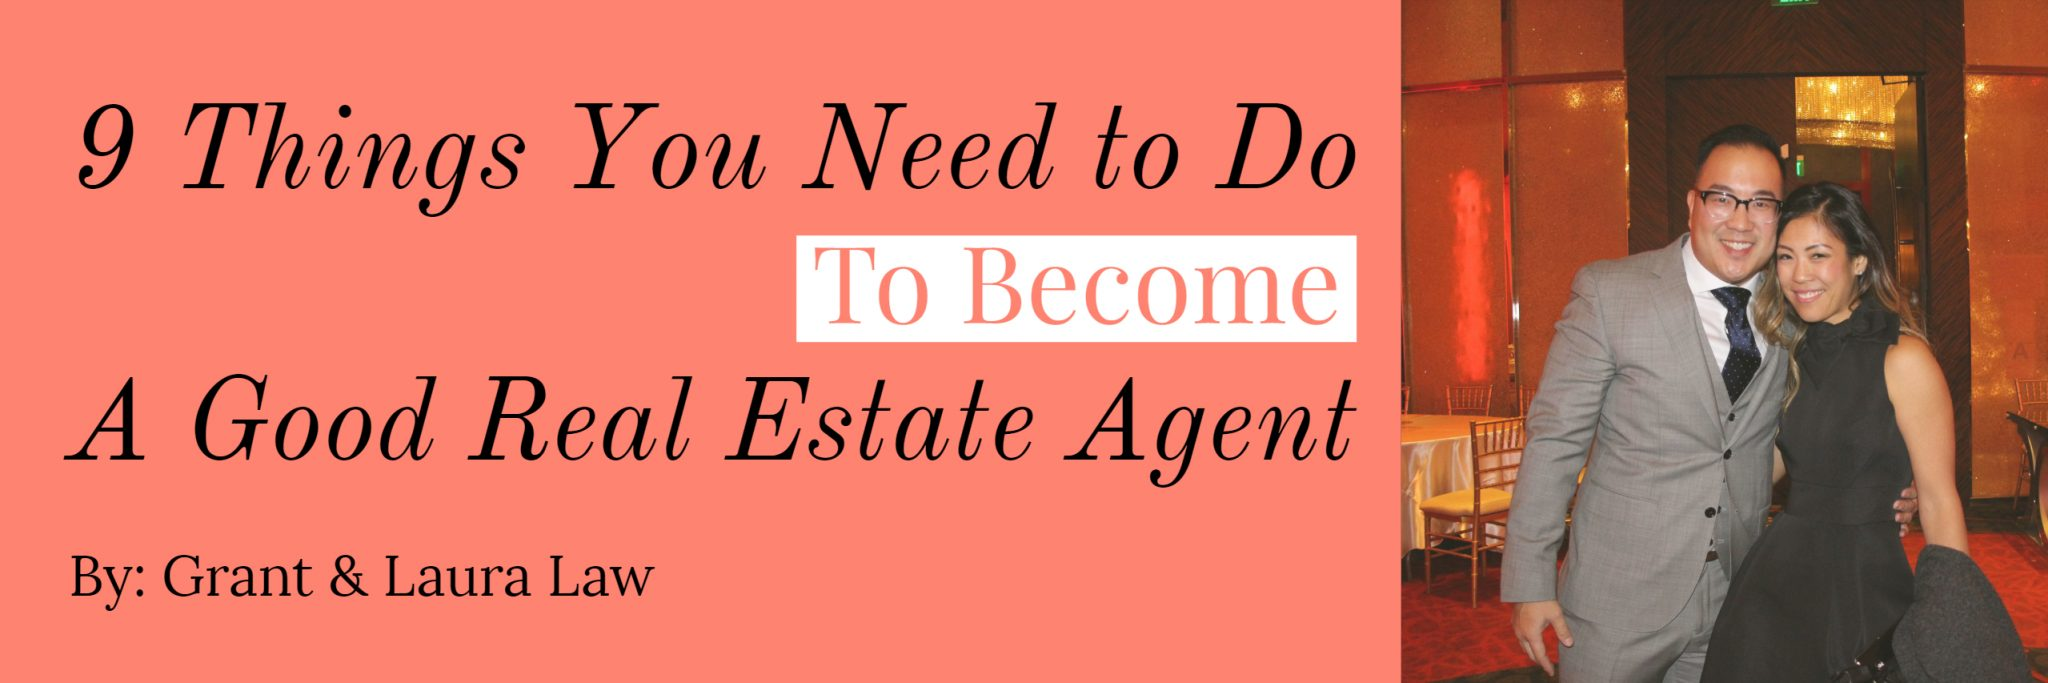 9 Things You Need To Do To Become A Good Real Estate Agent